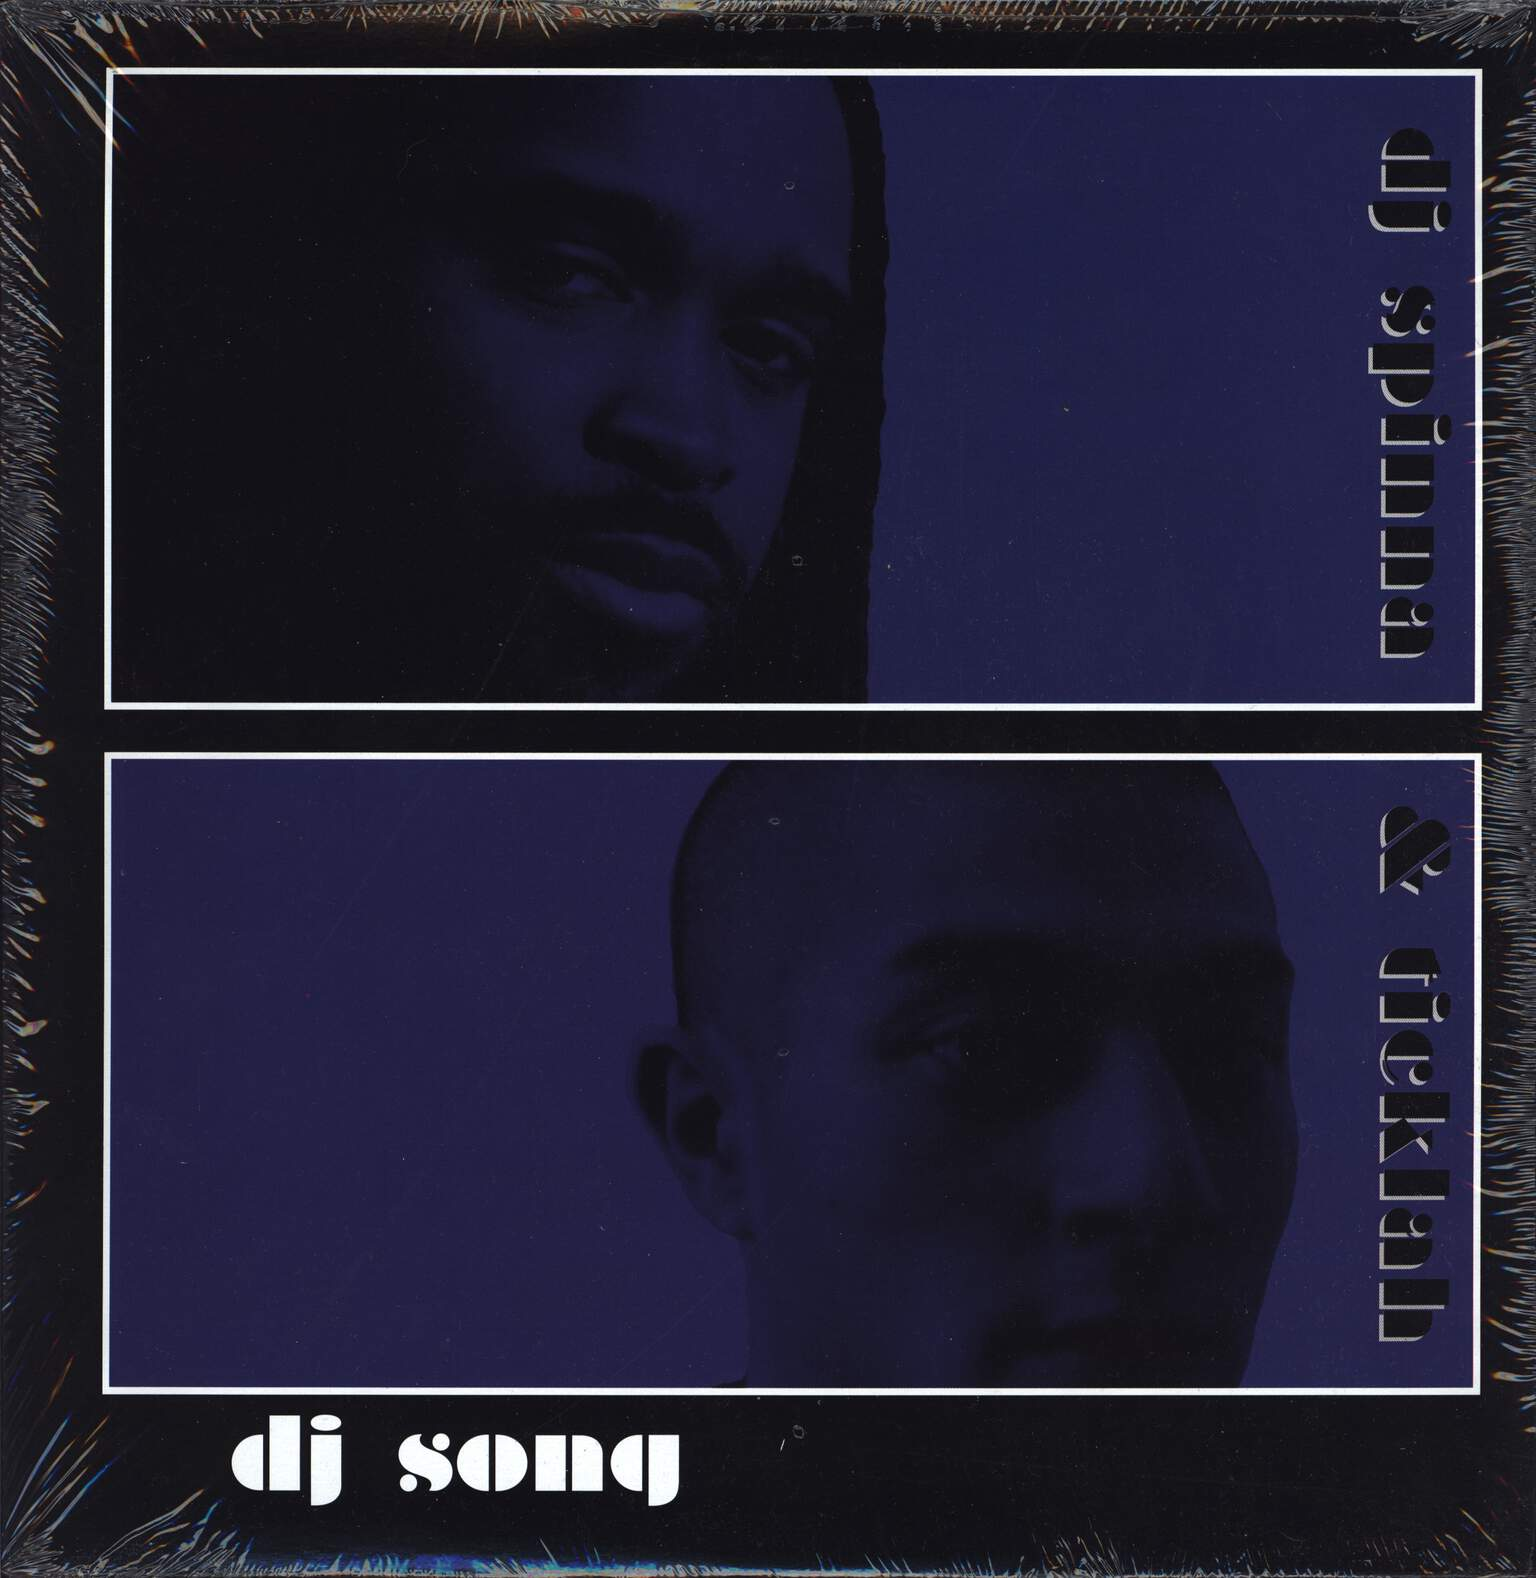 "DJ Spinna: DJ Song, 12"" Maxi Single (Vinyl)"